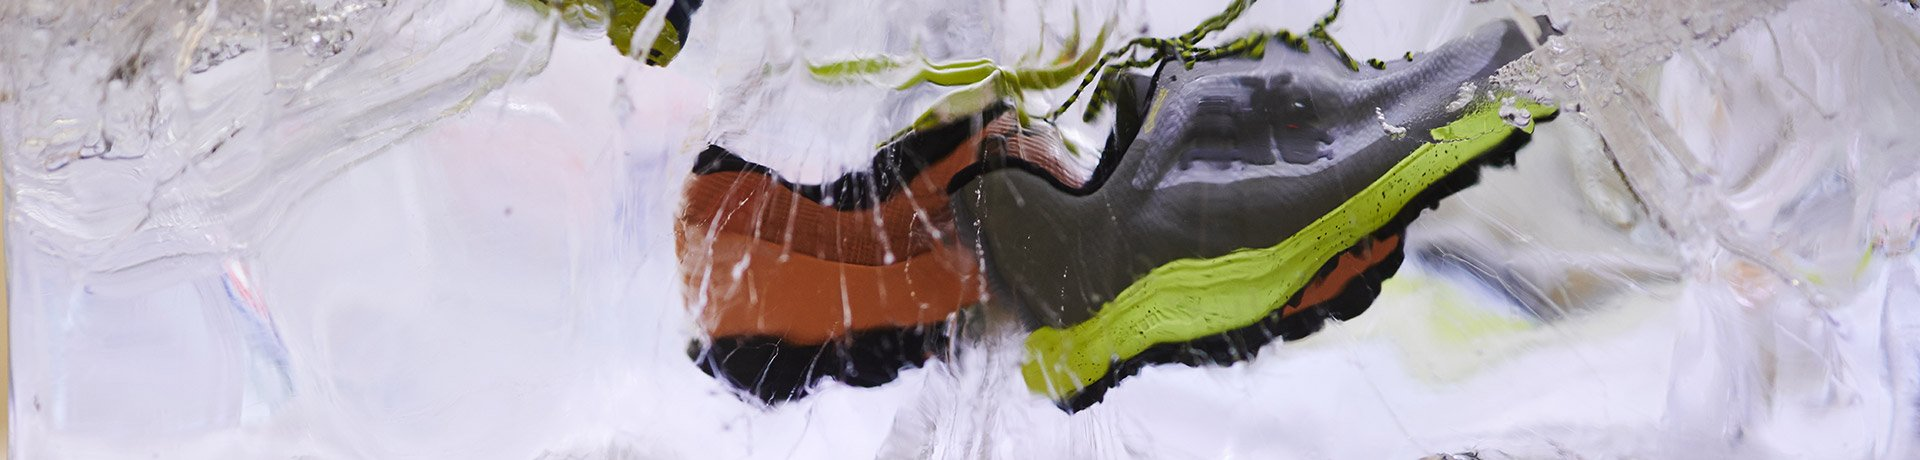 Shoes in ice